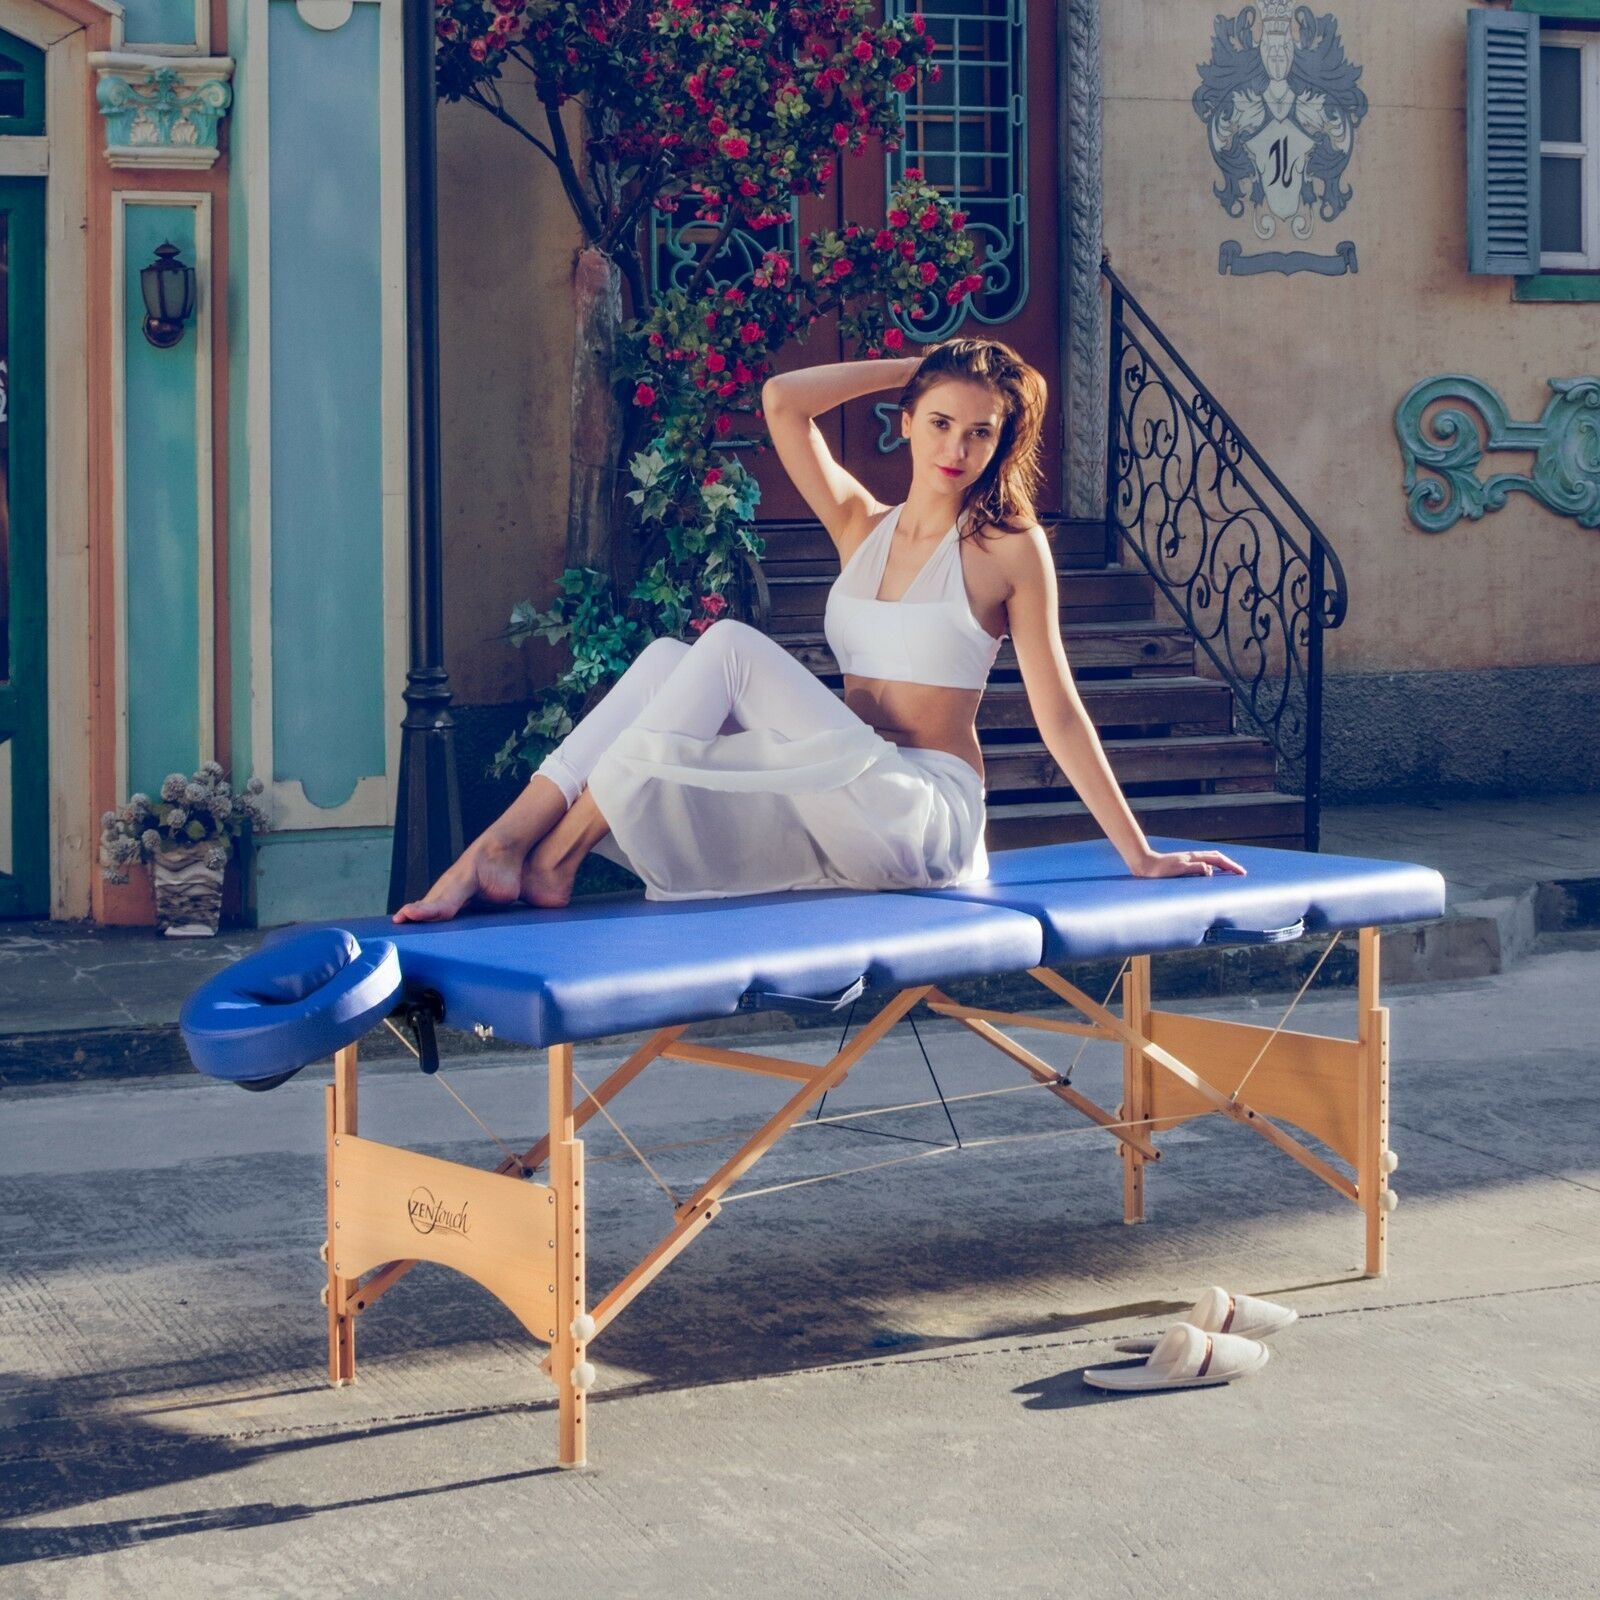 Master Massage Table Brady Portable Lightweight 28 inch Pack